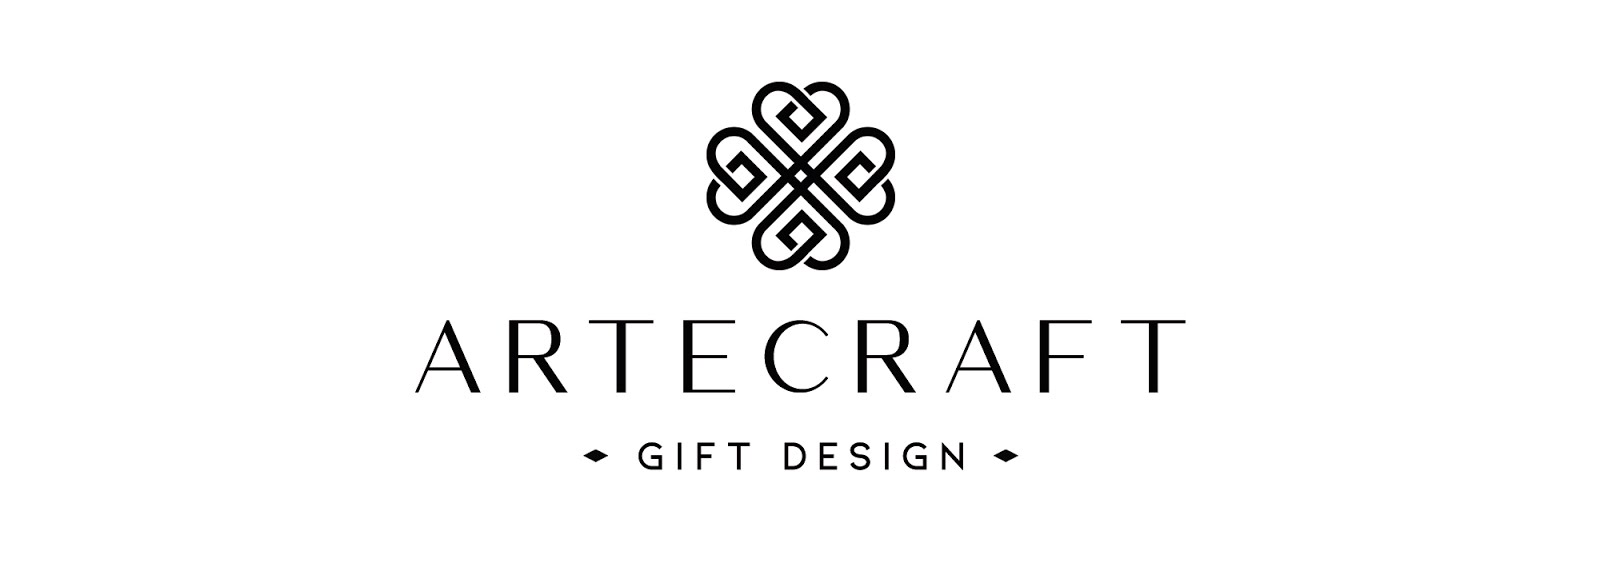 Artecraft Gift Design